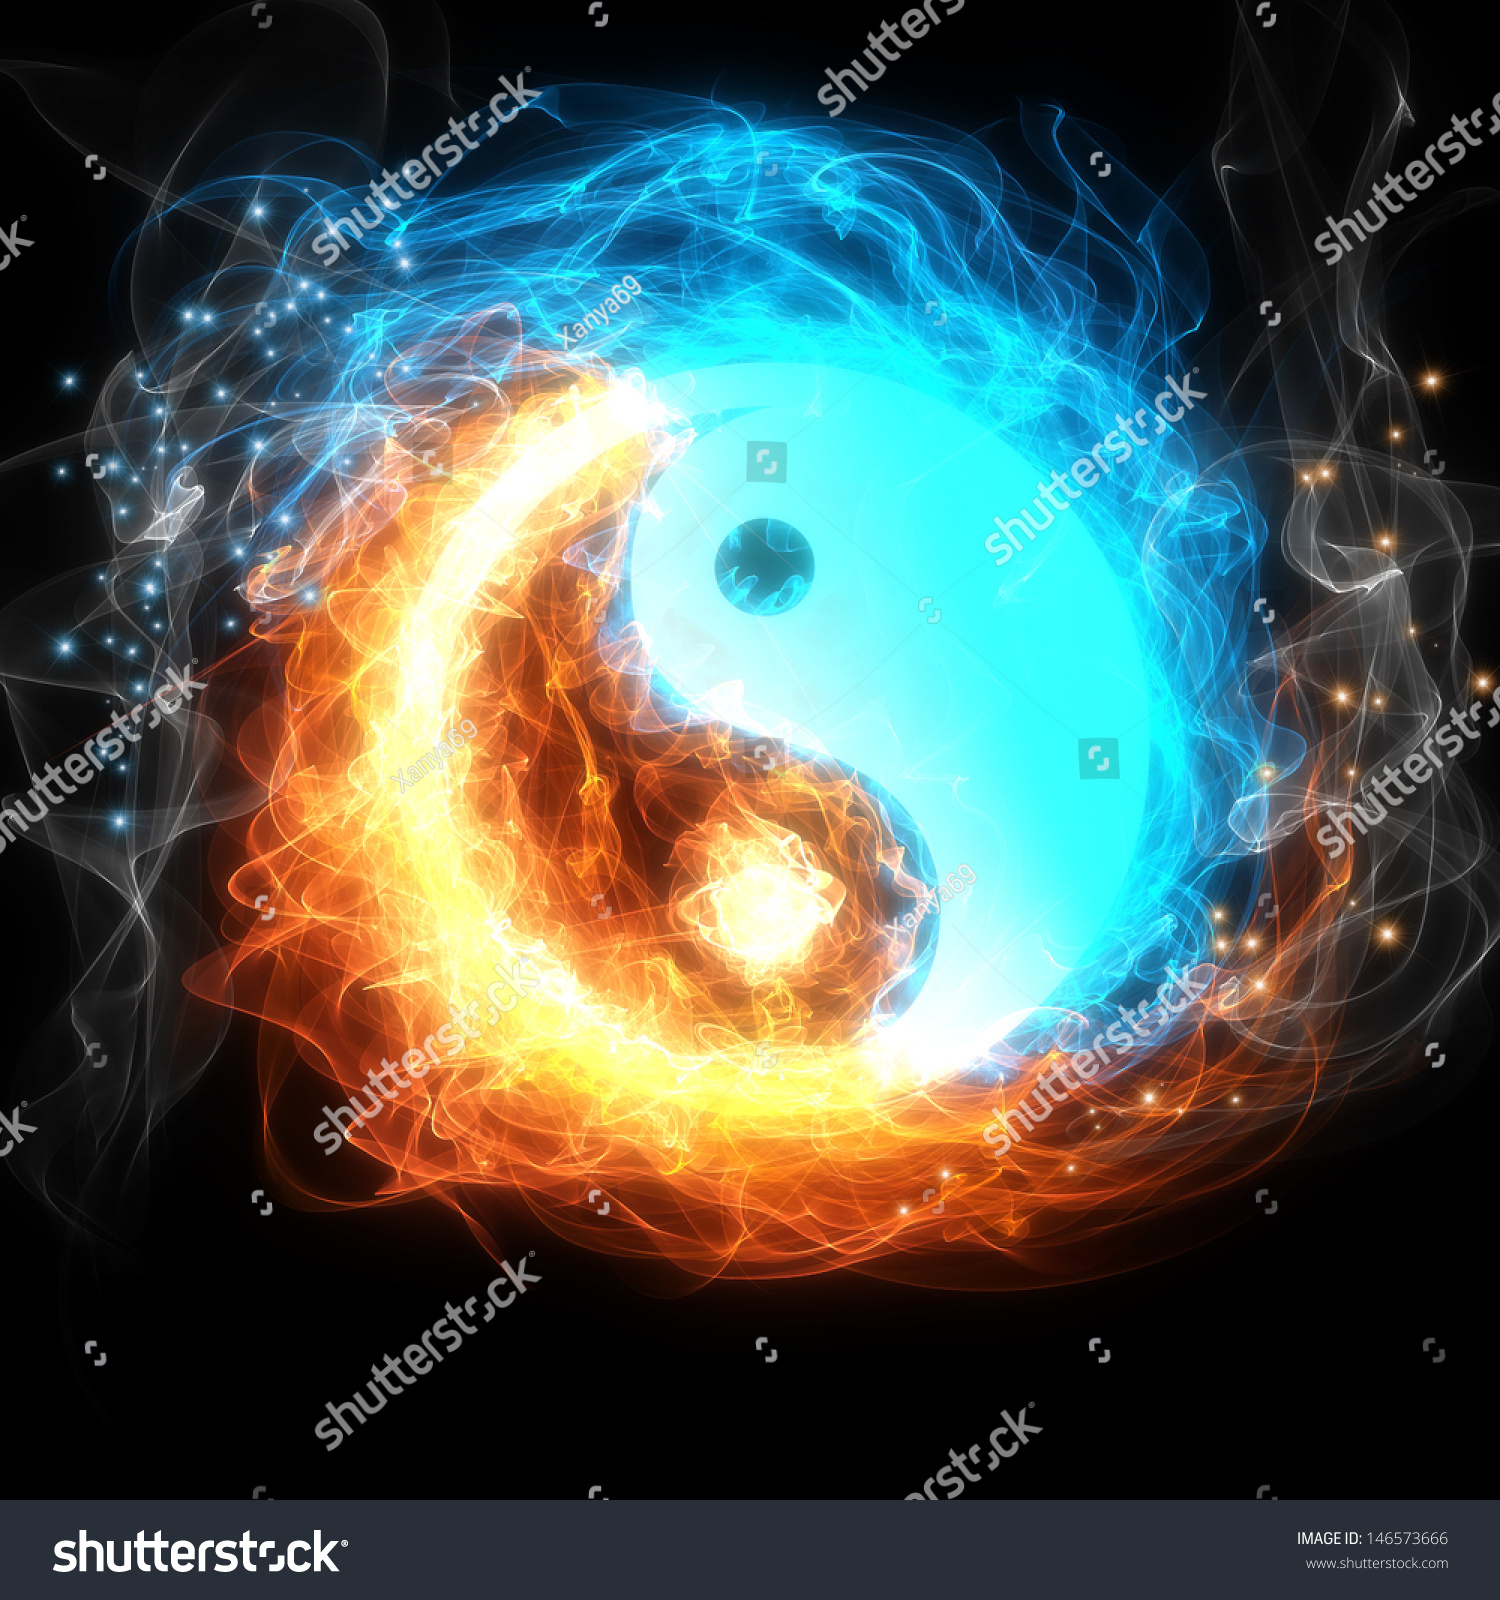 Yinyang Symbol Ice Fire Stock Illustration 146573666 Shutterstock